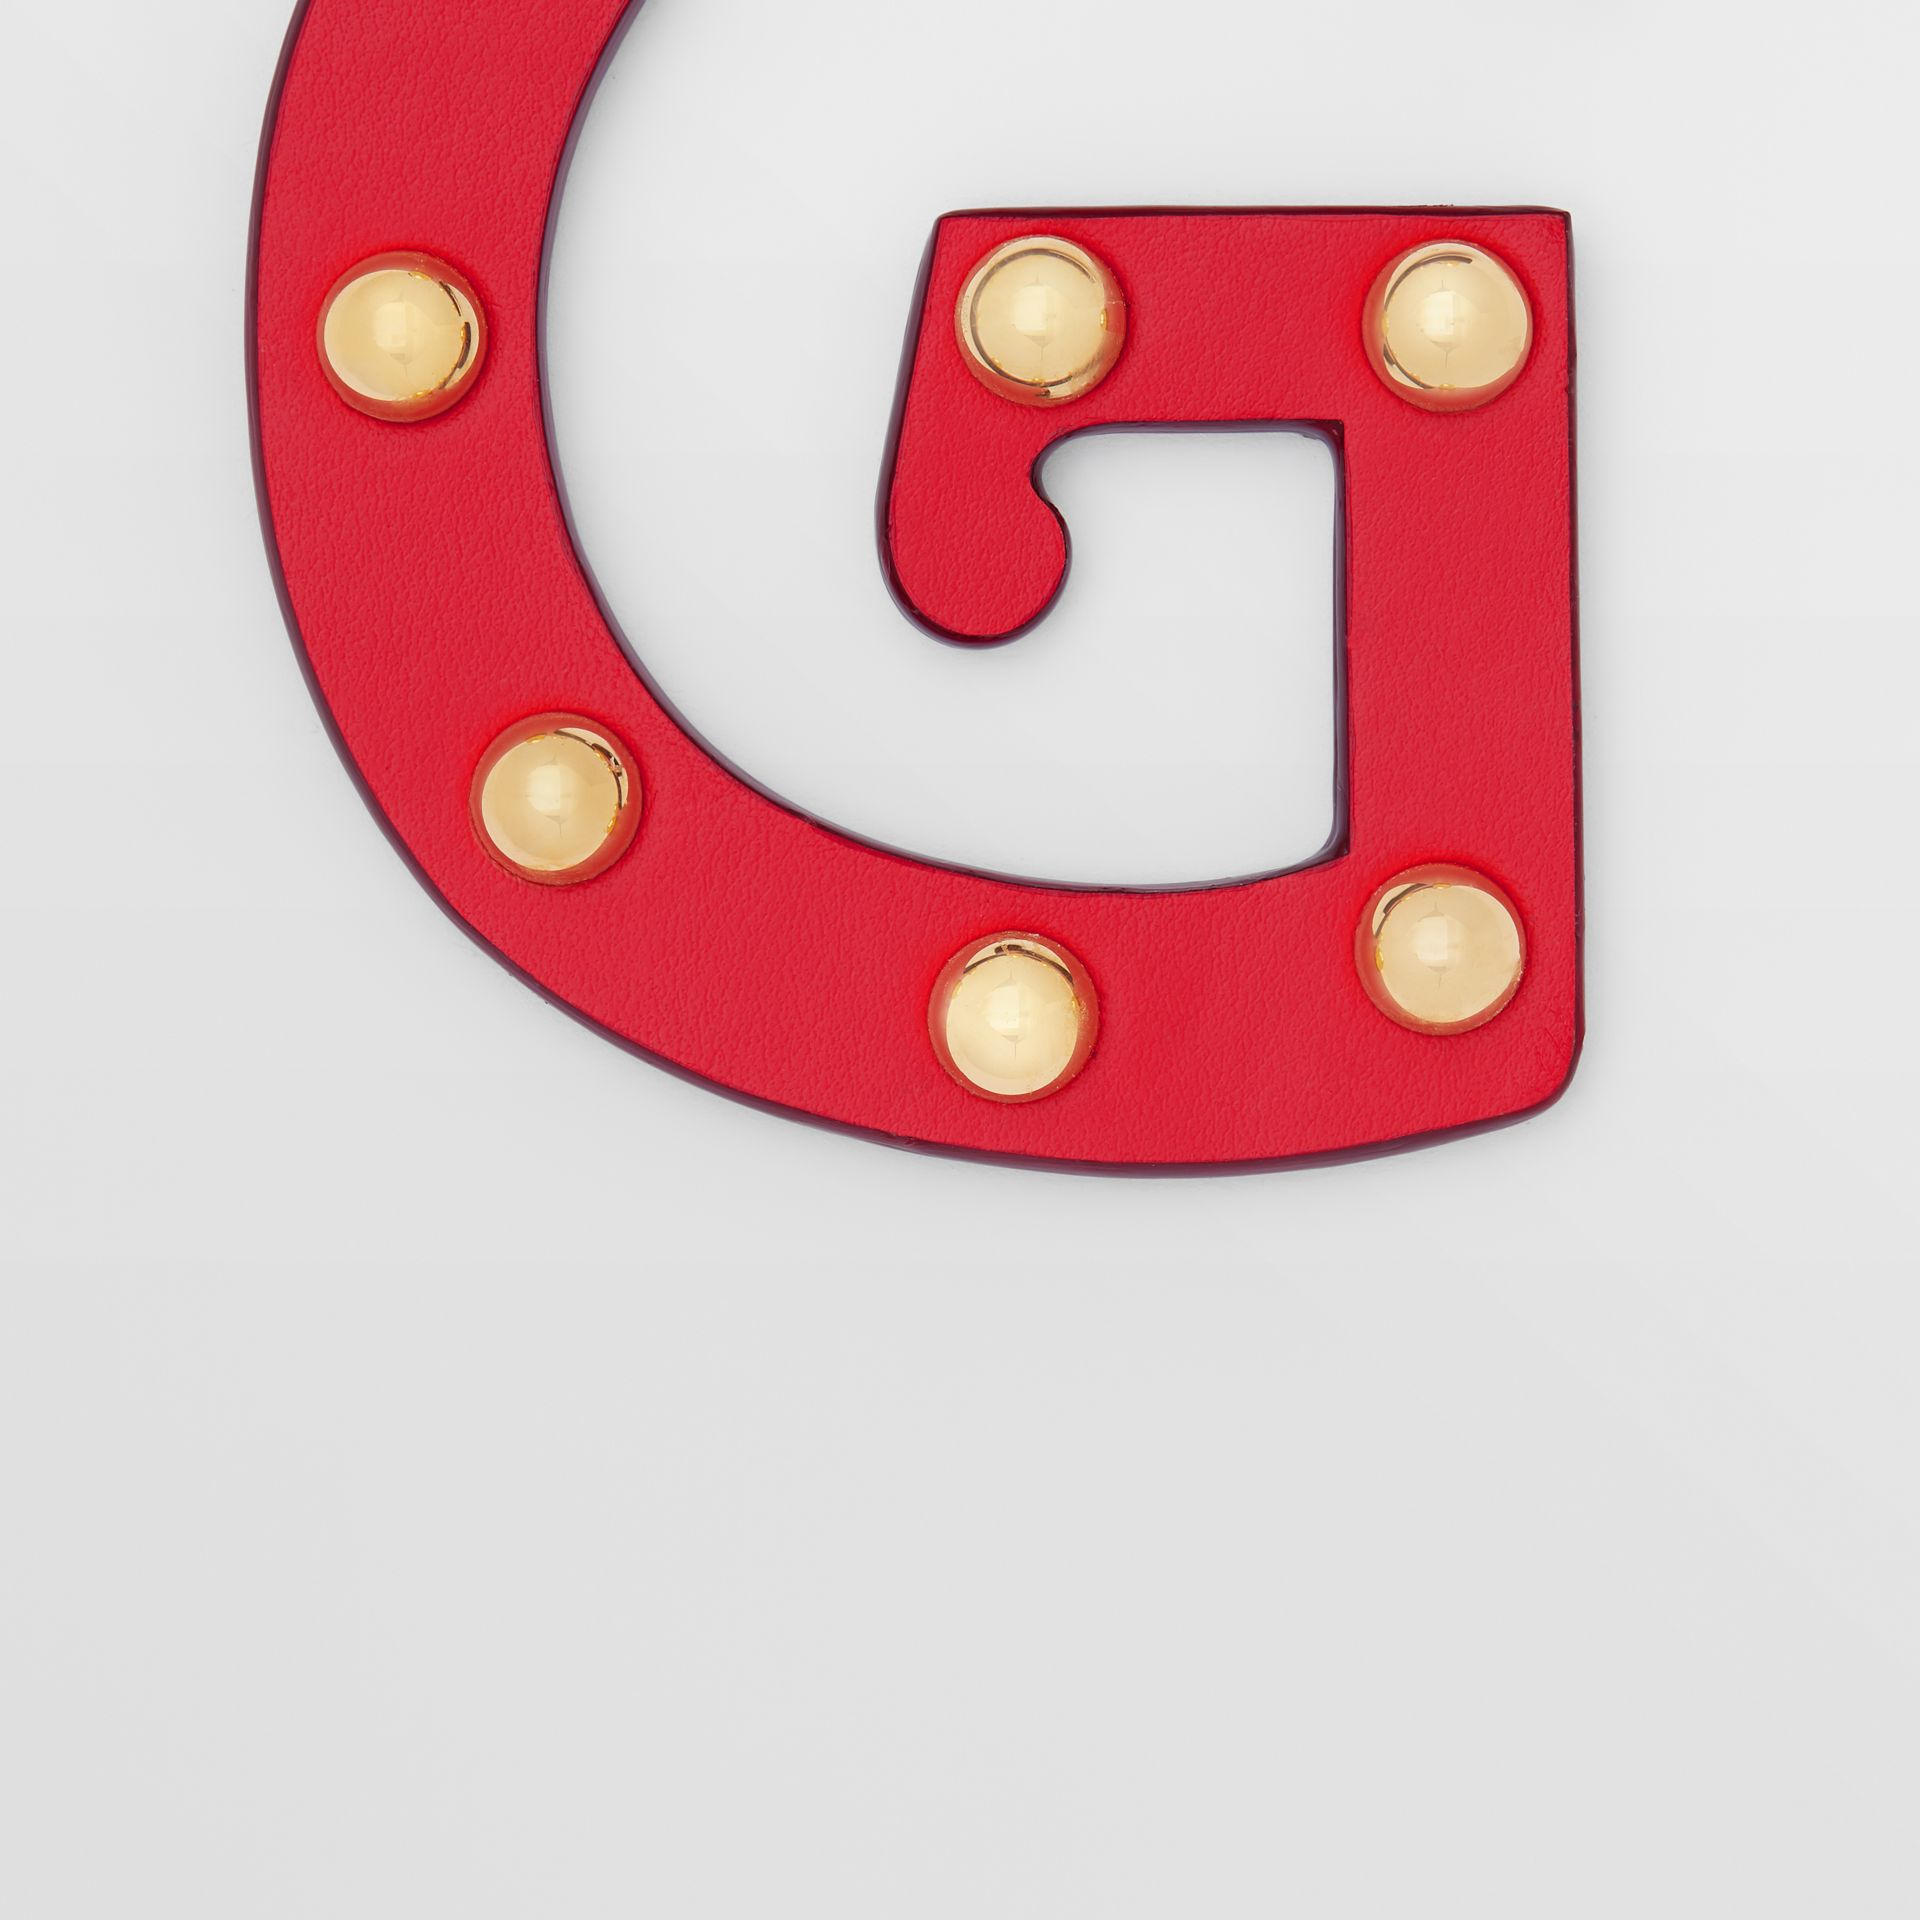 'G' Studded Leather Alphabet Charm in Red/light Gold - Women | Burberry Hong Kong S.A.R - gallery image 1